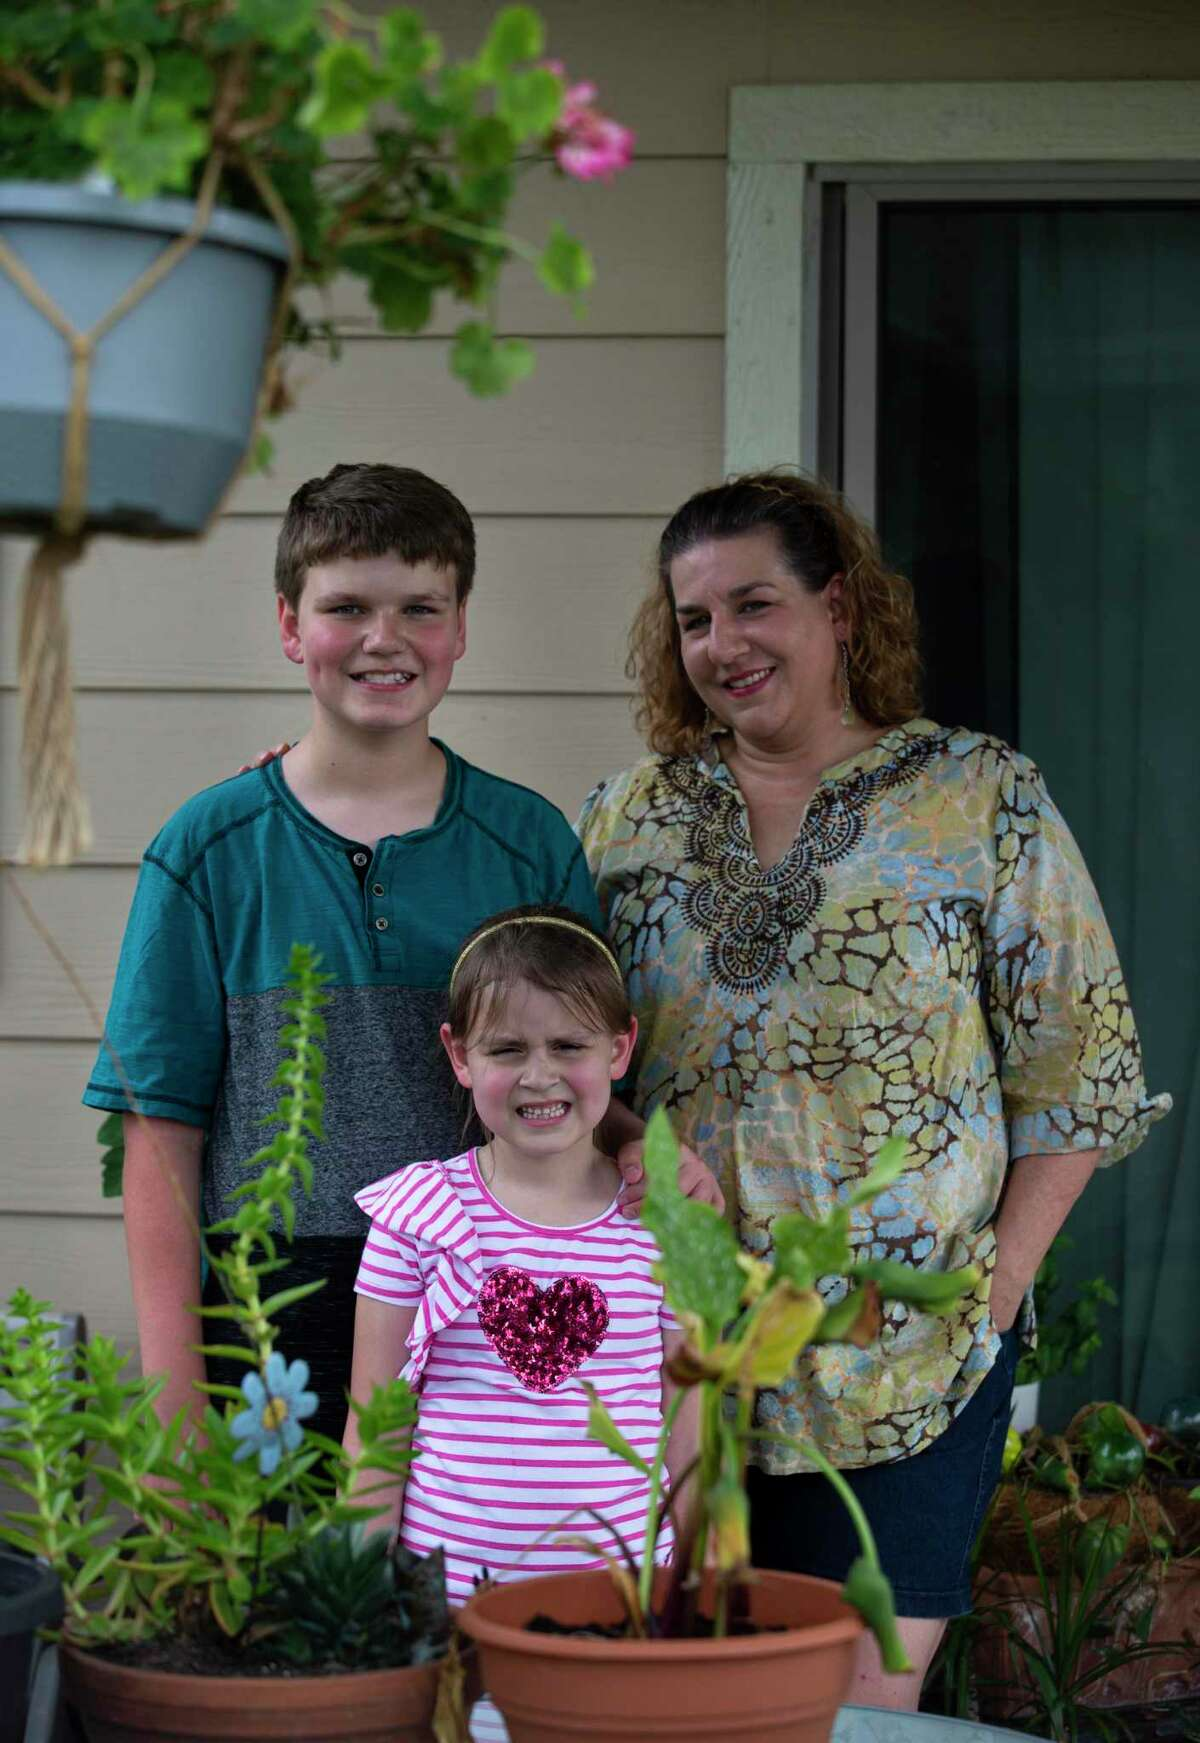 Denise Cupit and her two children, Riley Cupit, 11, and Zoey Cupit, 6, pose for a photograph Thursday, June 25, 2020, at their backyard in Katy. Riley will be going to sixth grade and Zoey will be going to first grade in Katy ISD, but Denise said they are not likely to return until community spread is practically zero, or until there's a widely available and safe vaccine.